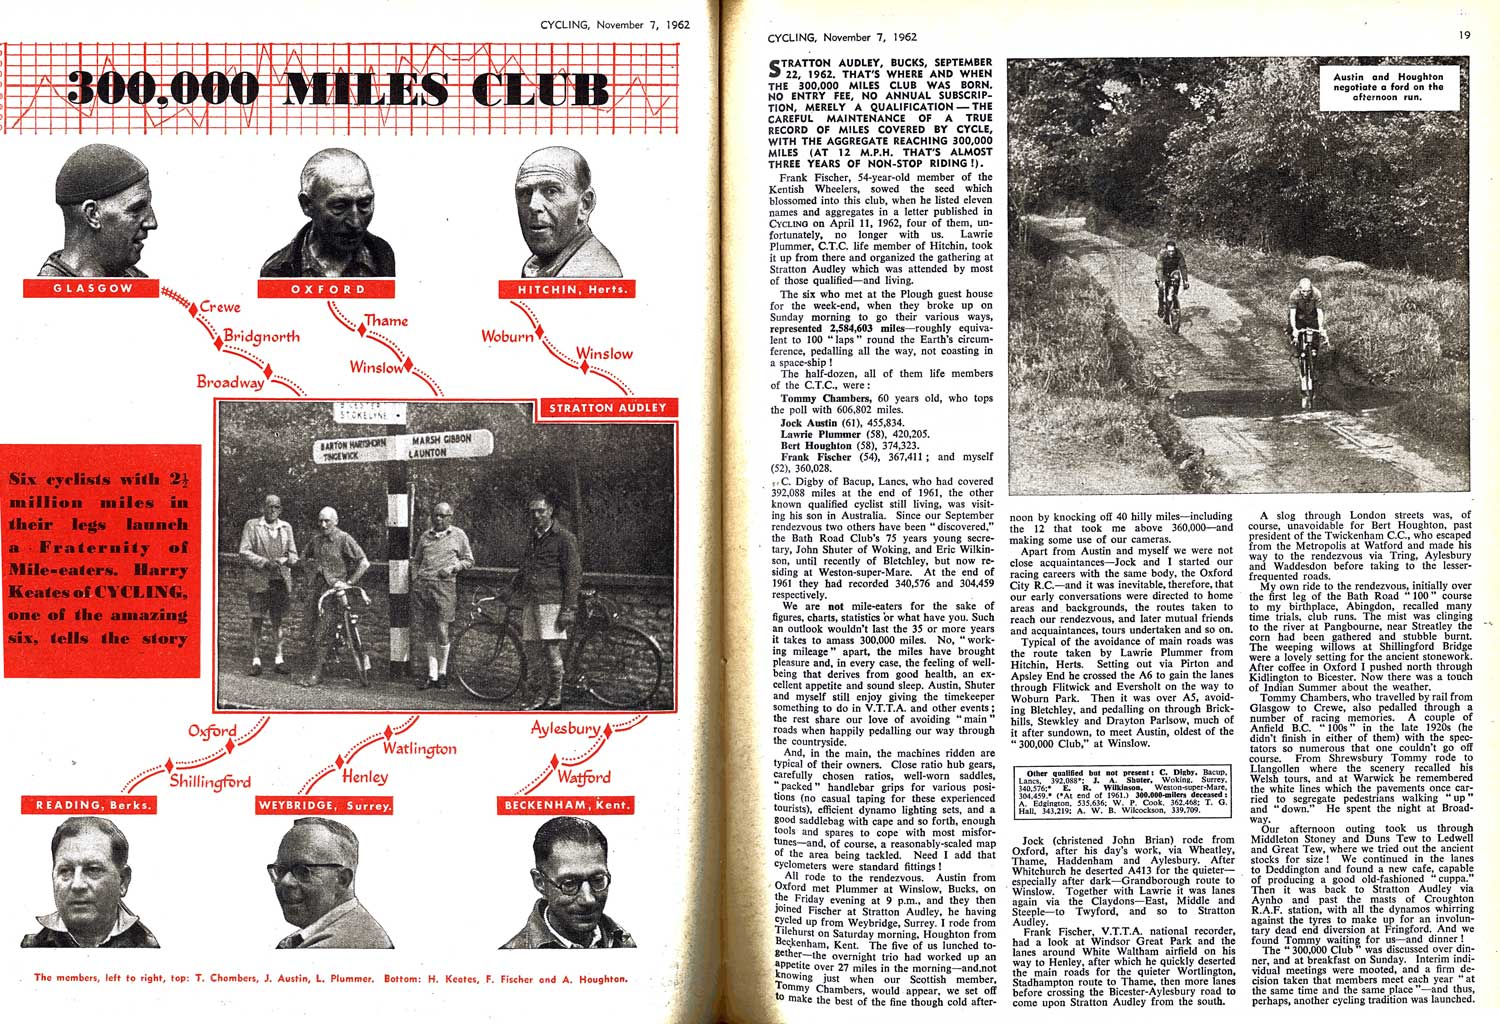 Cycling magazine article, 1962 © Copyright Time Inc. (UK) Ltd.